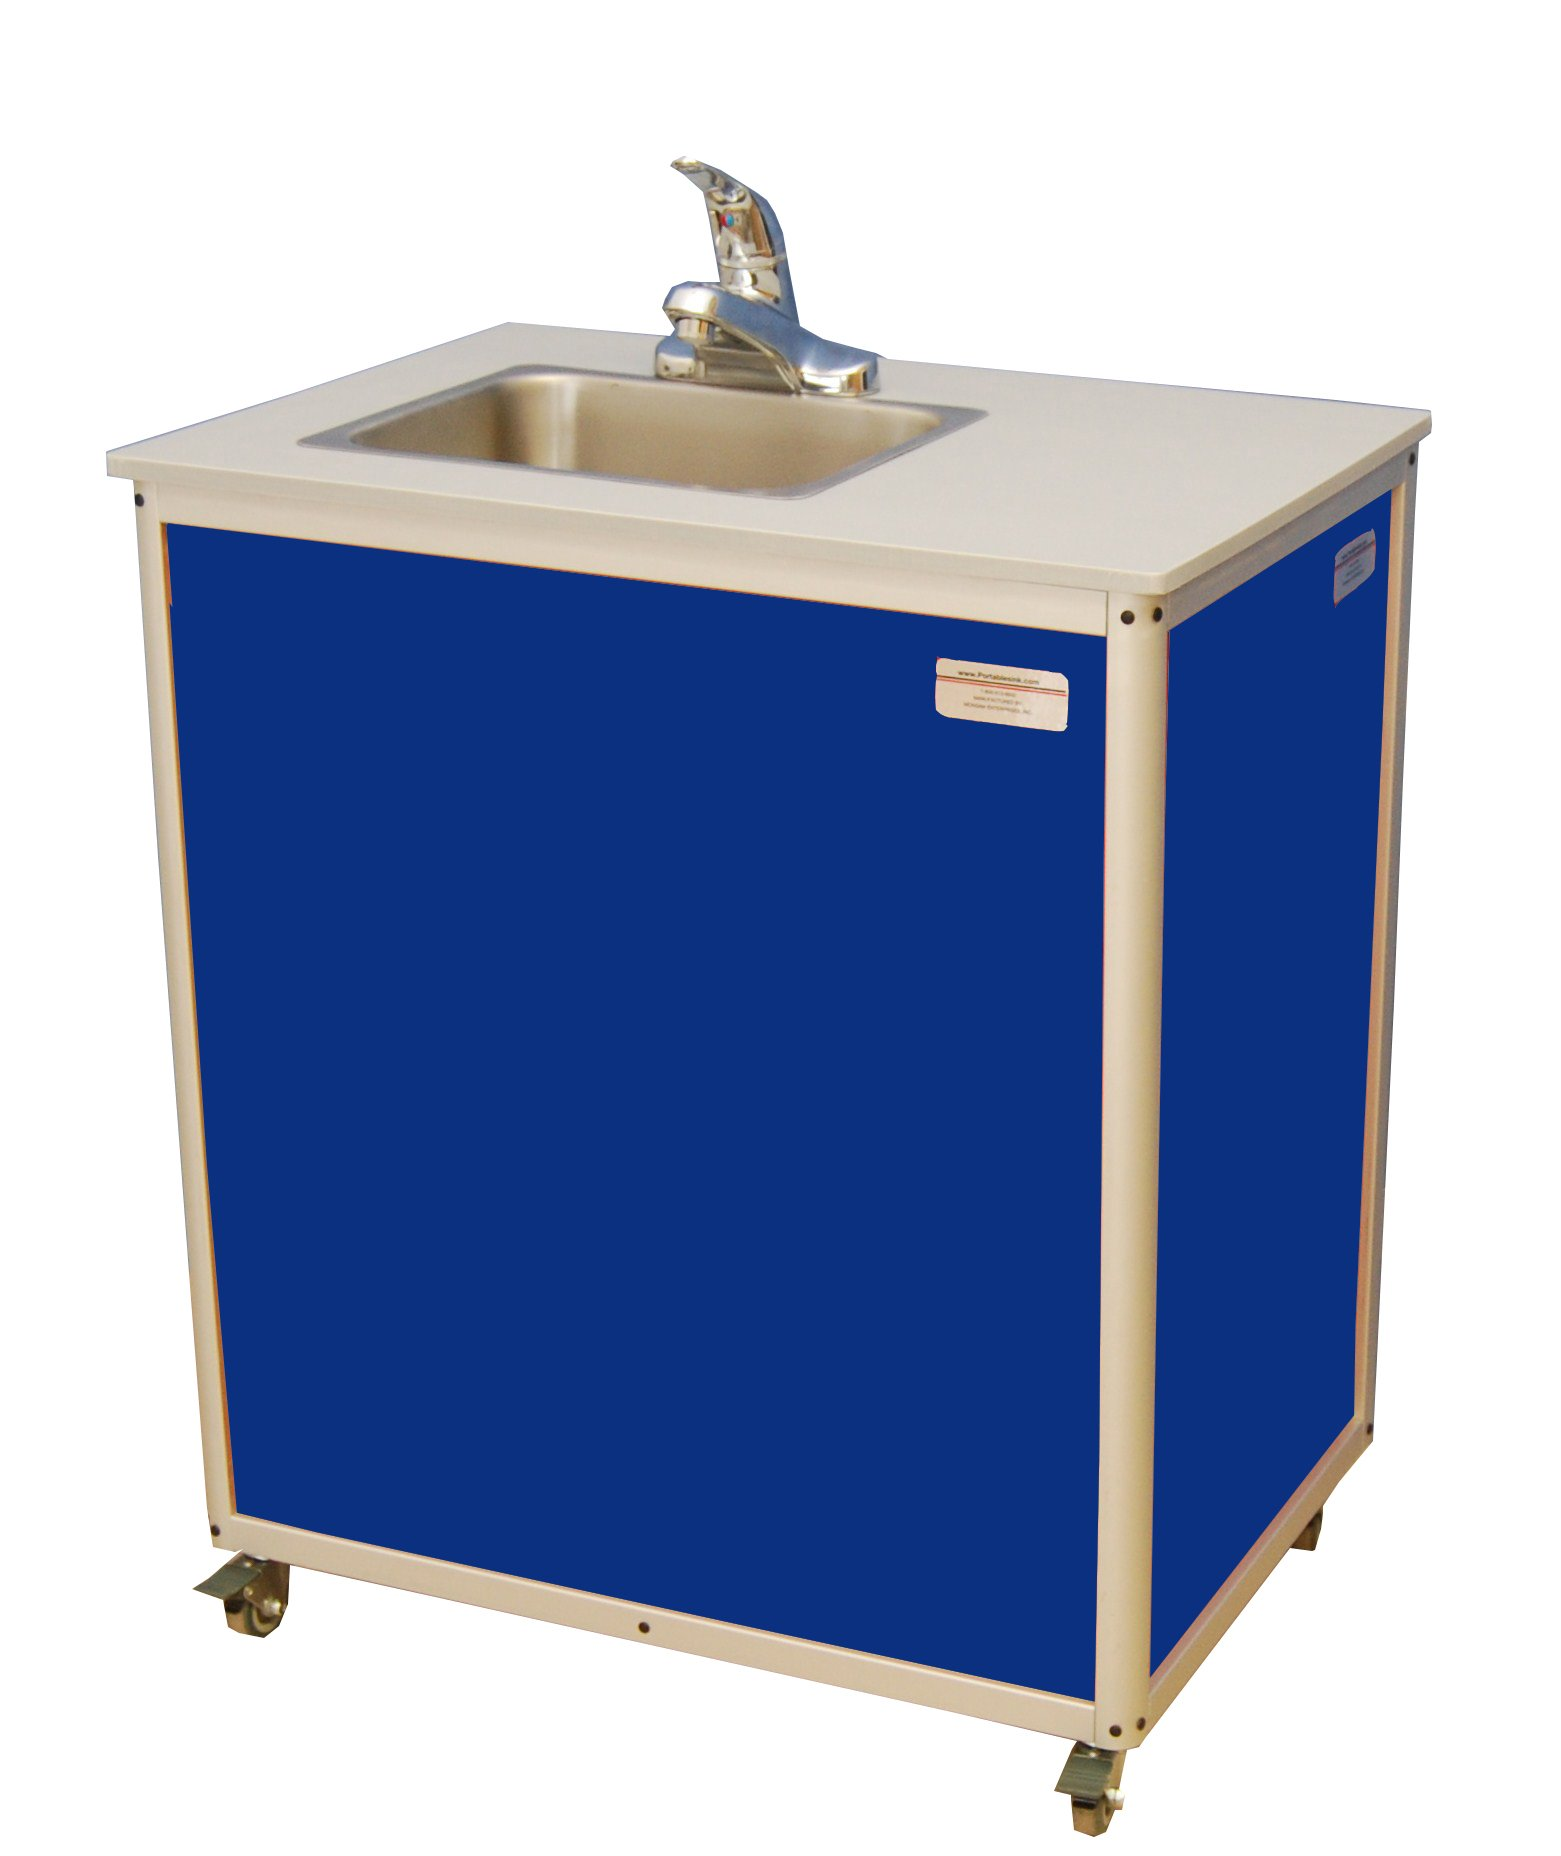 Monsam PSE-2007 Blue Preschool and Childcare Single Basin Portable Sink, 32'' Length x 18'' Width x 30-1/4'' Height